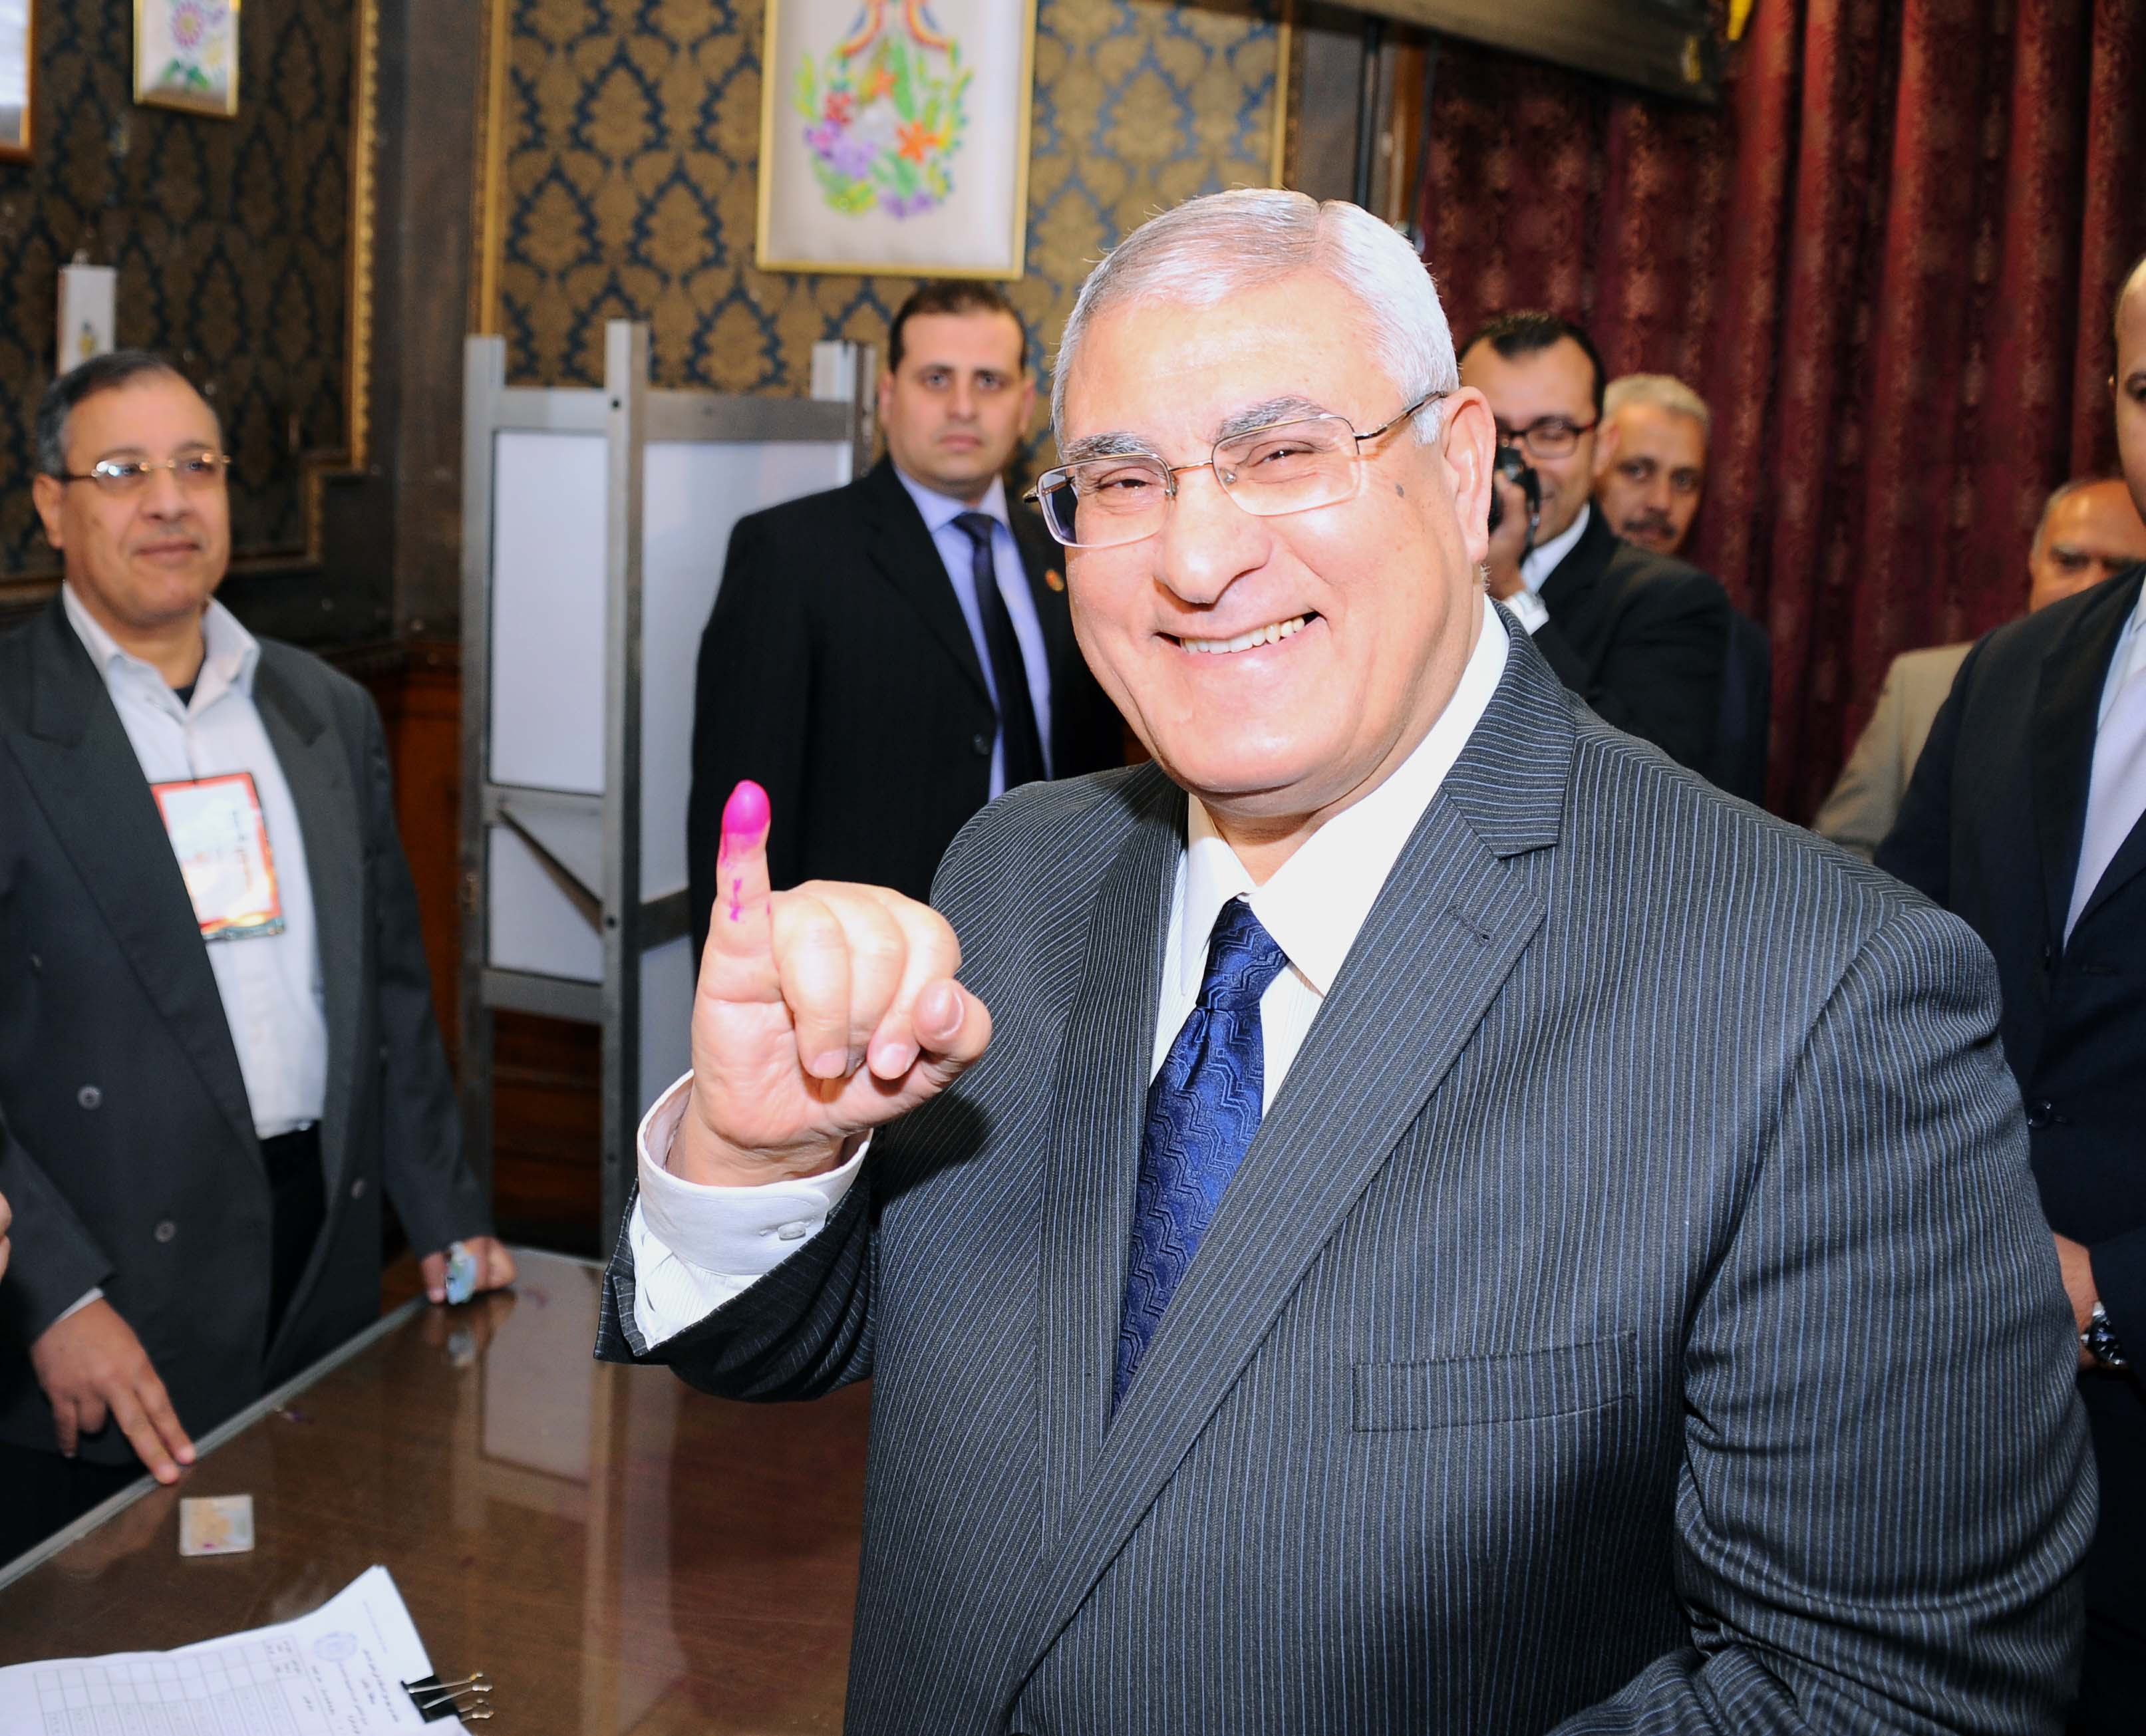 A handout picture released by Egyptian presidency shows Egypt's interim president Adly Mansour showing his ink-stained finger after voting on a new constitution outside a polling station in Cairo on 14 January 2014.